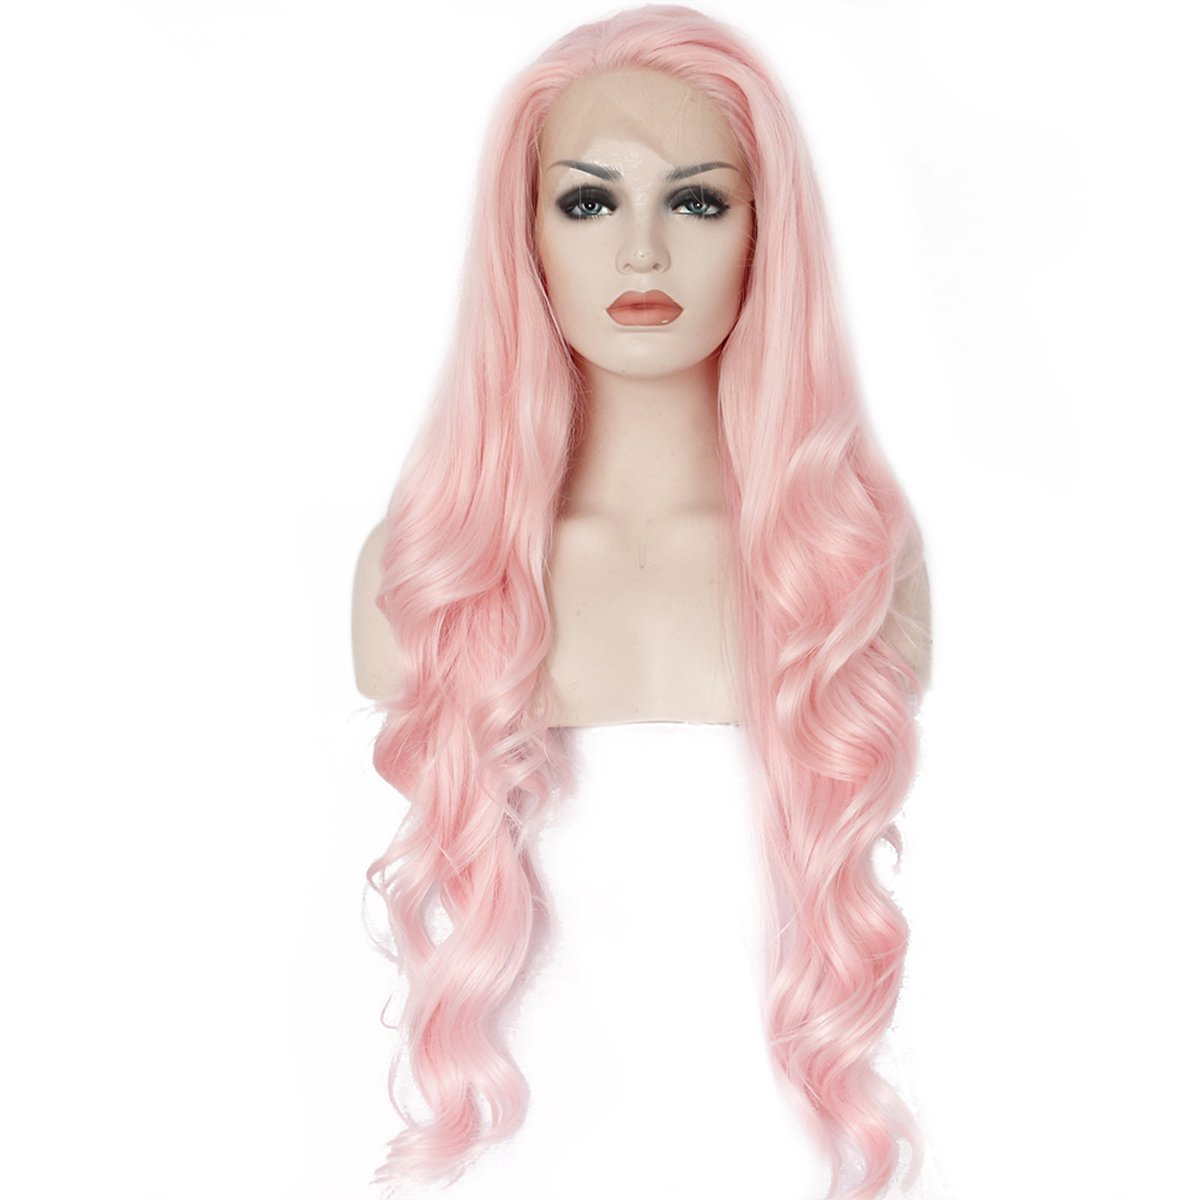 Ebingoo Handmade Women Synthetic Lace Front Wig Heat Resistant Natural Long Wavy Fiber Hair Pink Color (24inches)